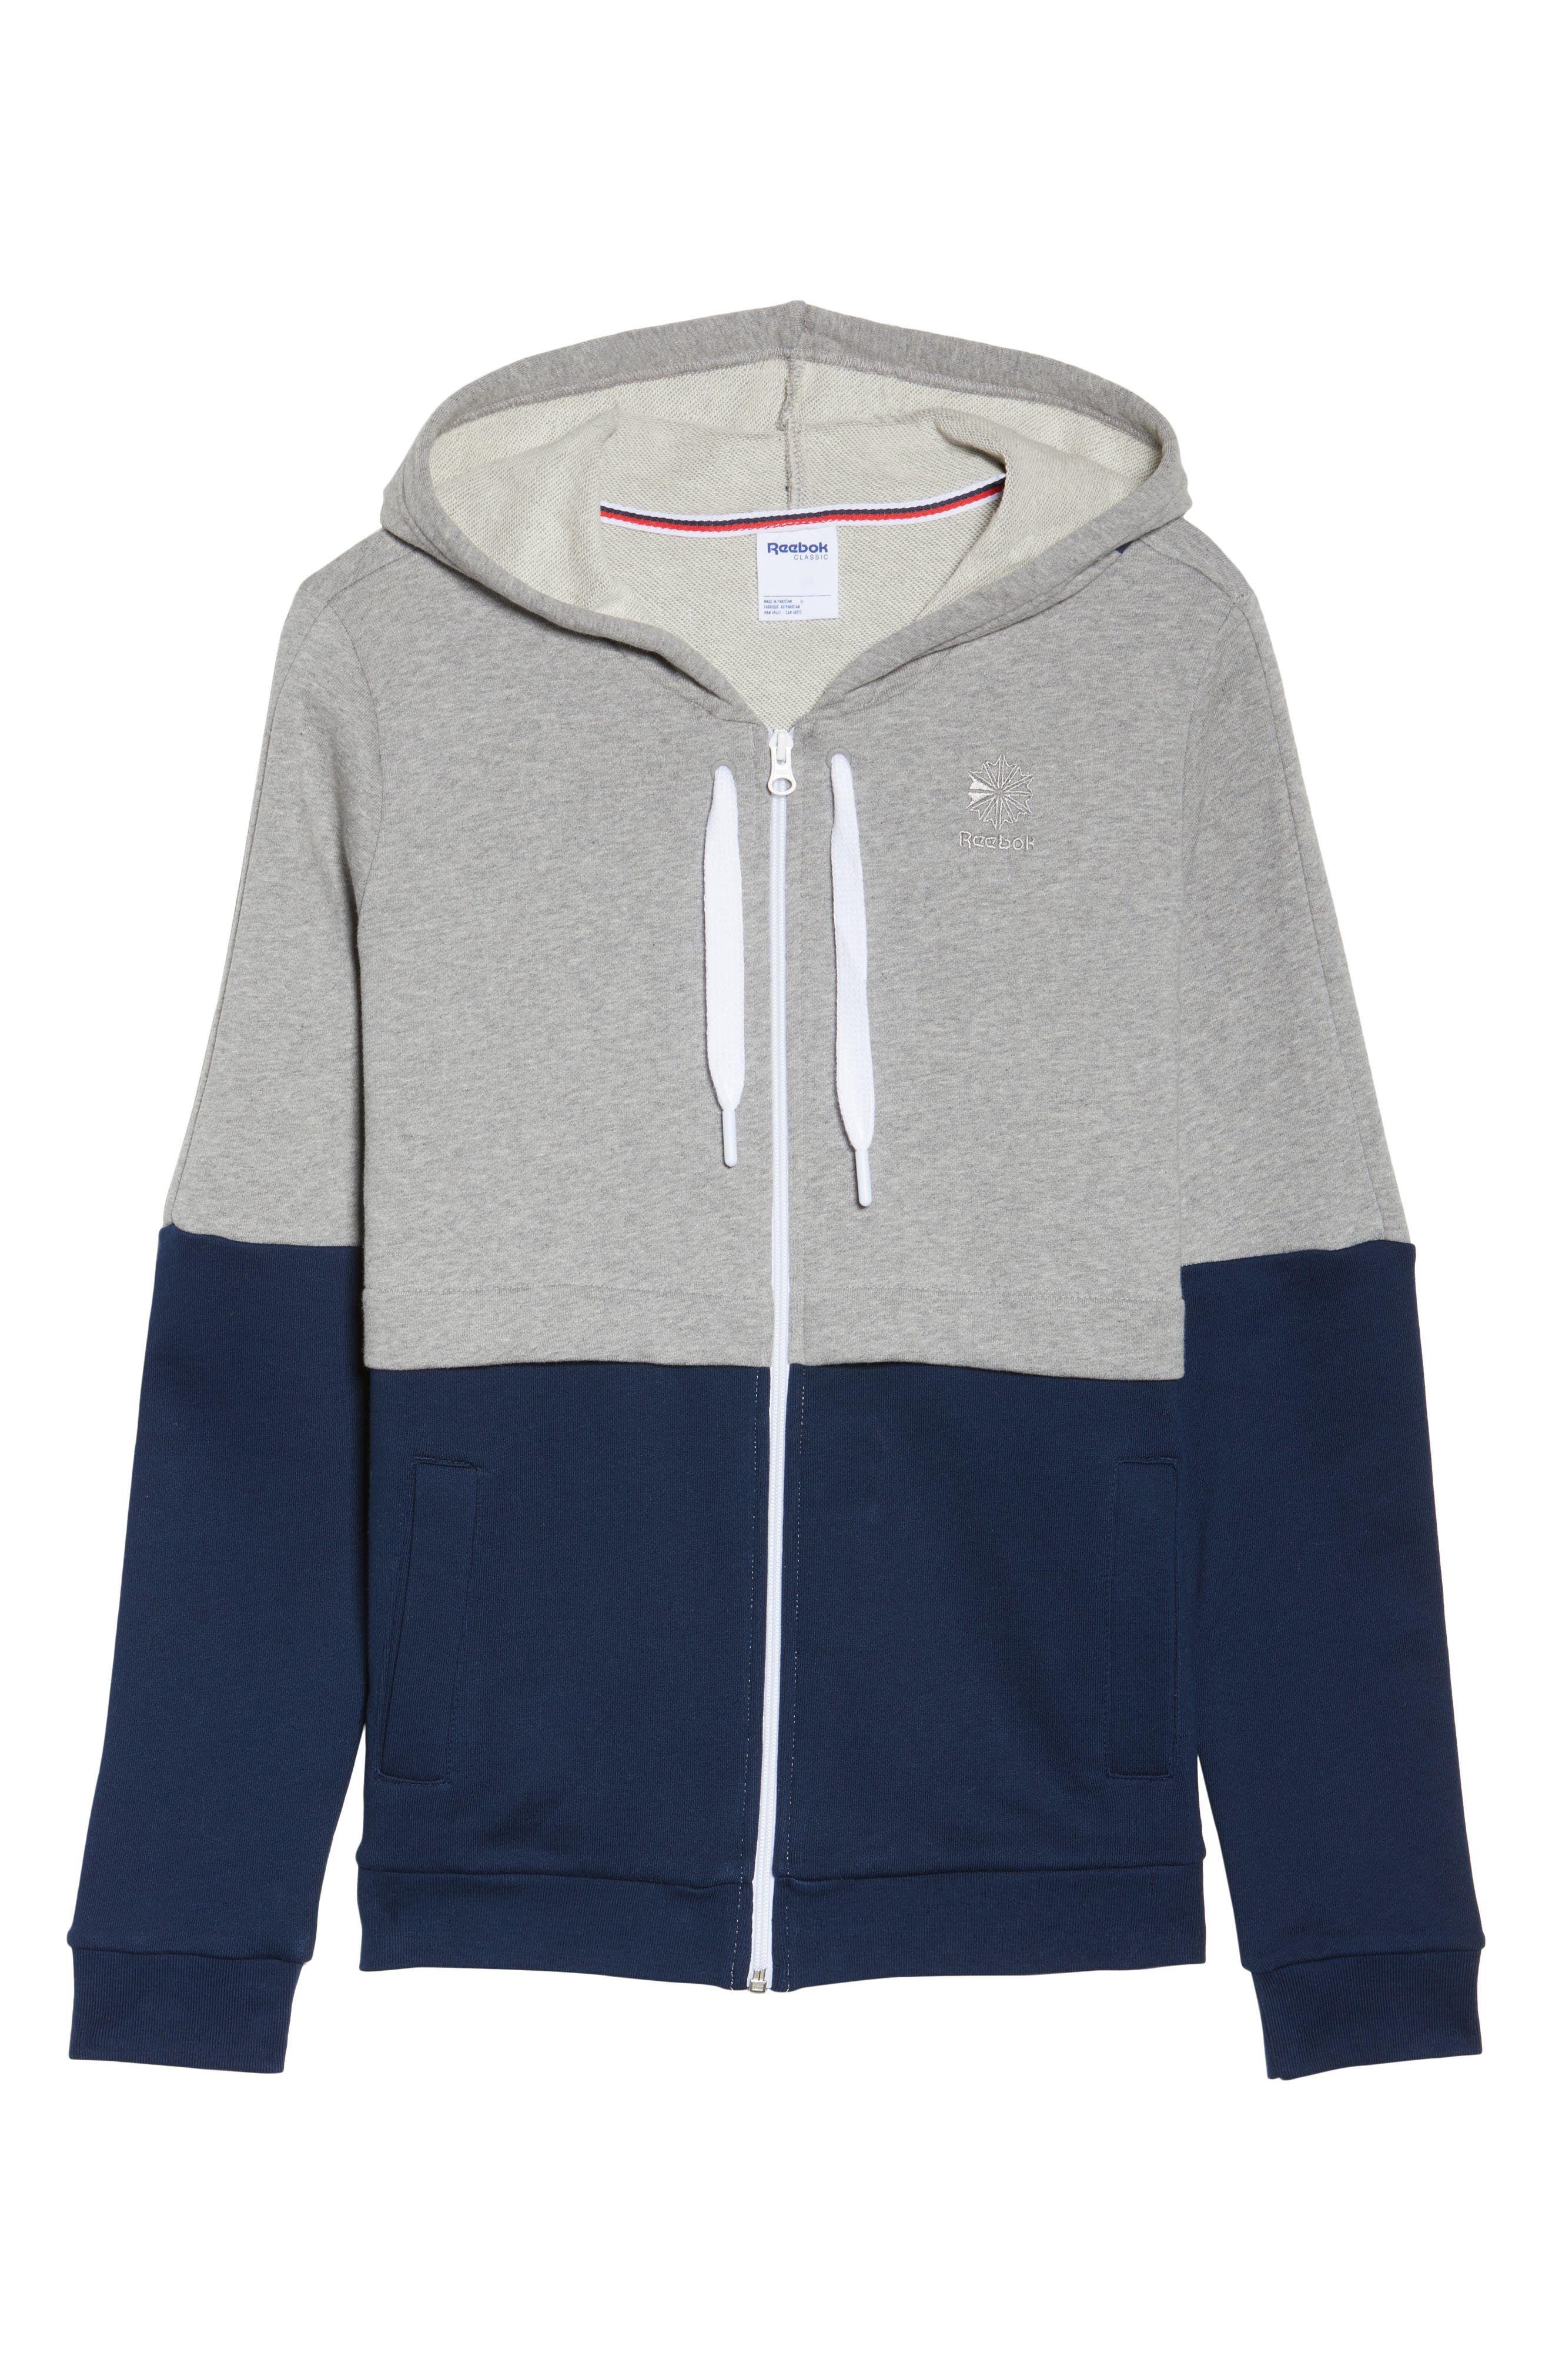 Classics French Terry Zip Hoodie,                             Alternate thumbnail 7, color,                             Medium Grey Heather